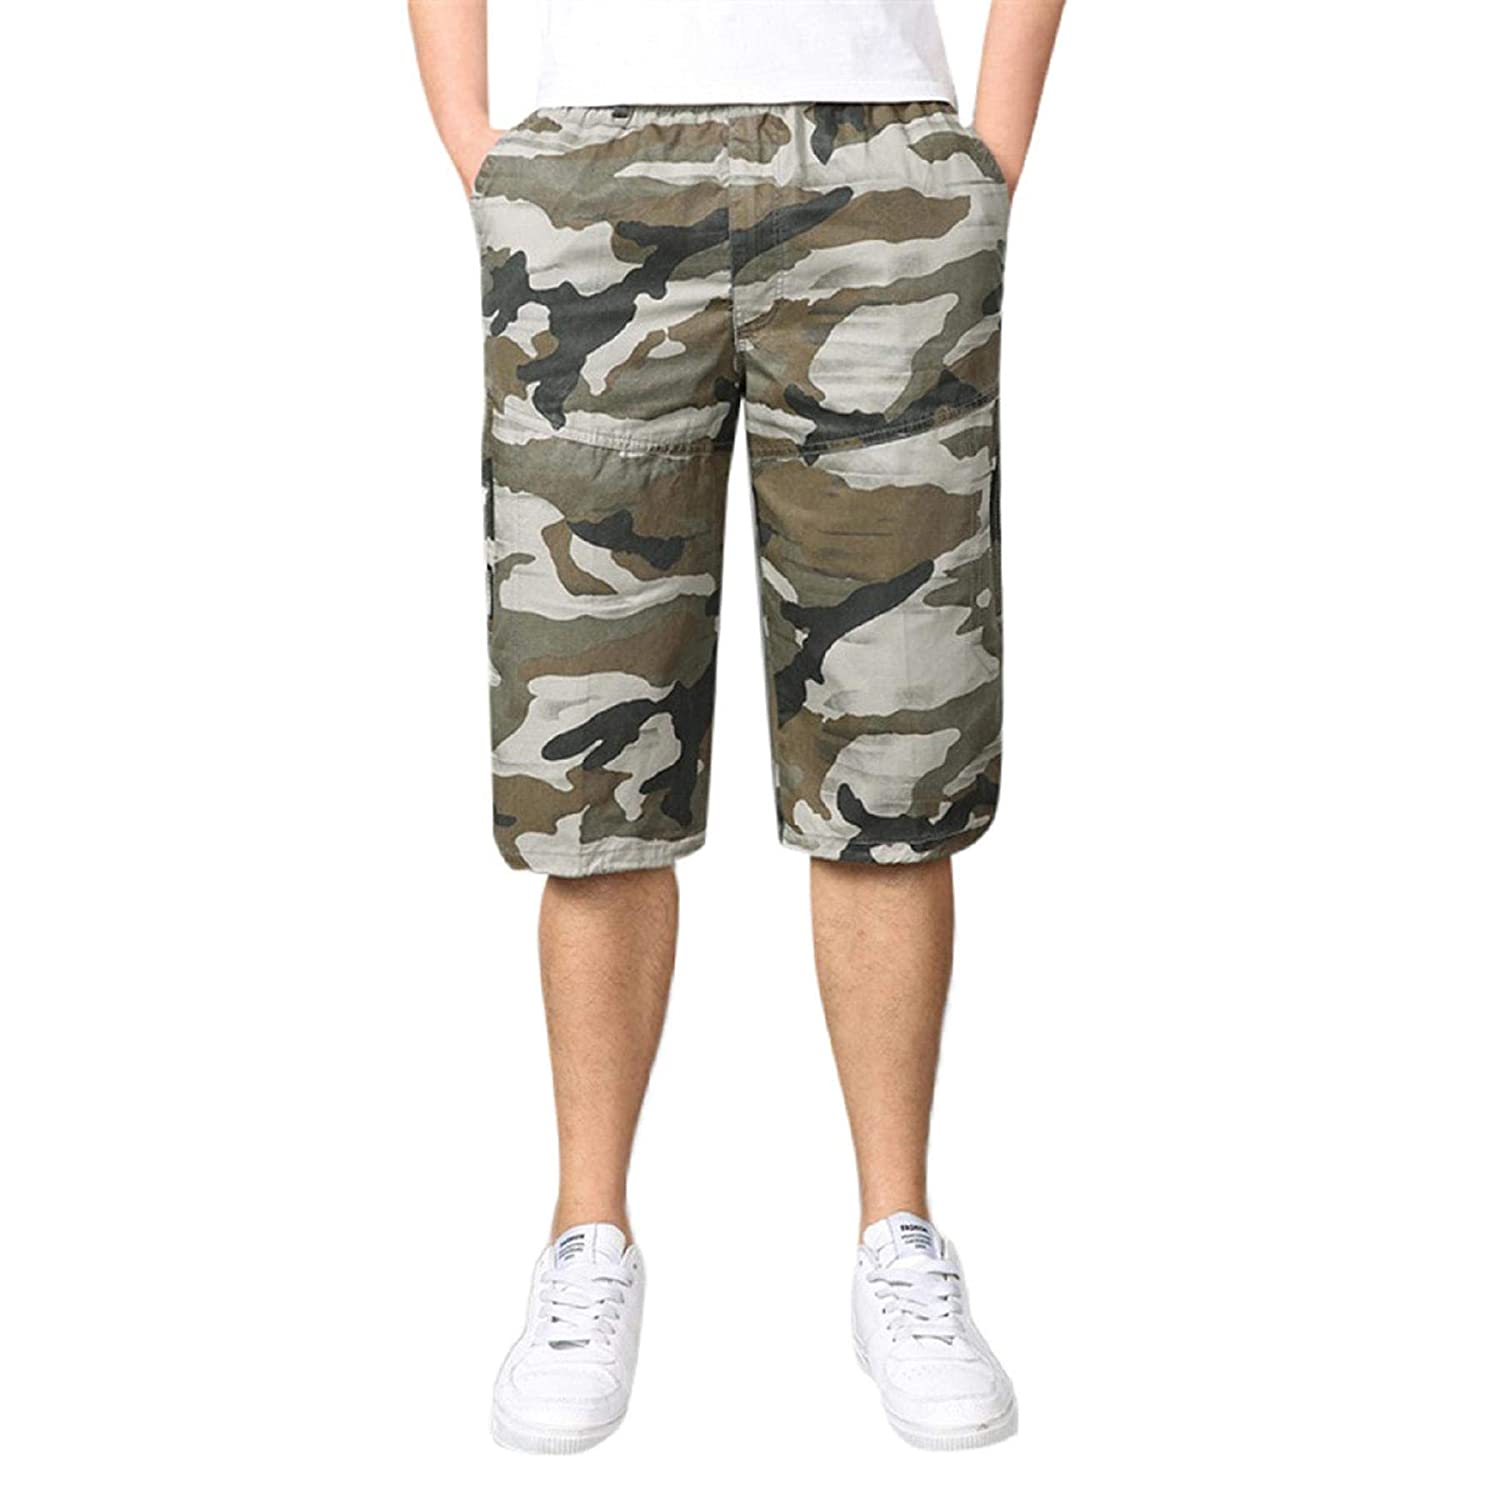 77593a366f Amazon.com: ANKOLA FOR MEN Mens Multi-Pocket Cotton Shorts, Summer Camo  Cargo Shorts Loose Fit Lightweight Camouflage Short Pants: Clothing